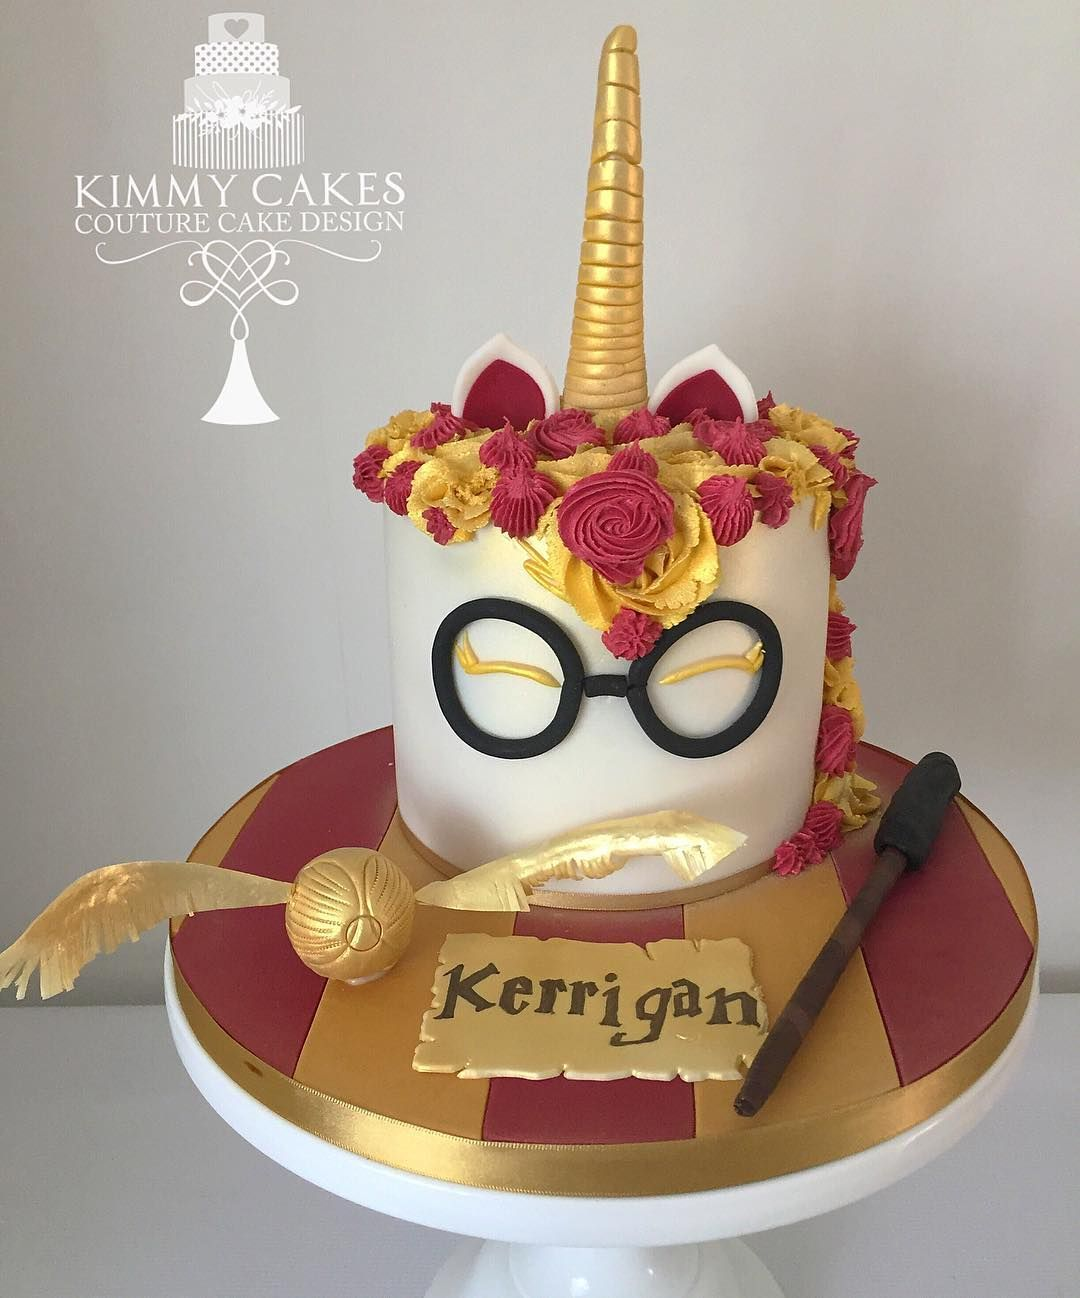 Harry Potter Unicorn Cake From Kimmycakes Ccd Kimmycakes Ccd